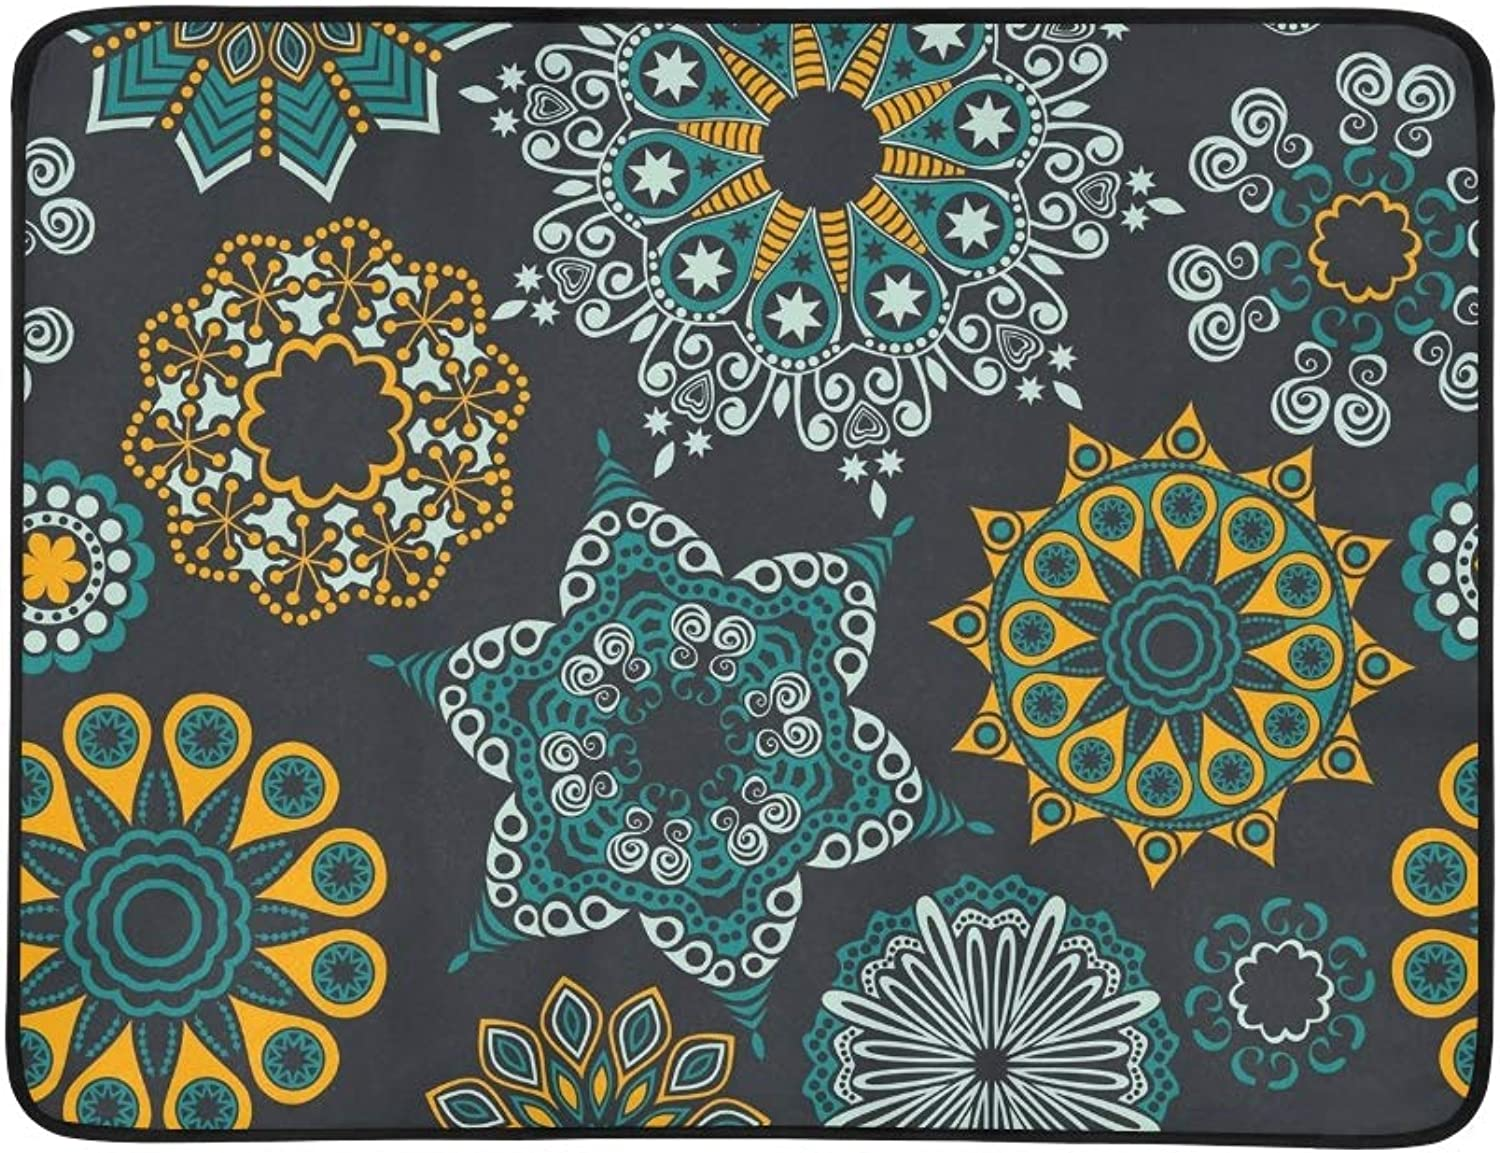 Bright Ornate Flowers Portable and Foldable Blanket Mat 60x78 Inch Handy Mat for Camping Picnic Beach Indoor Outdoor Travel